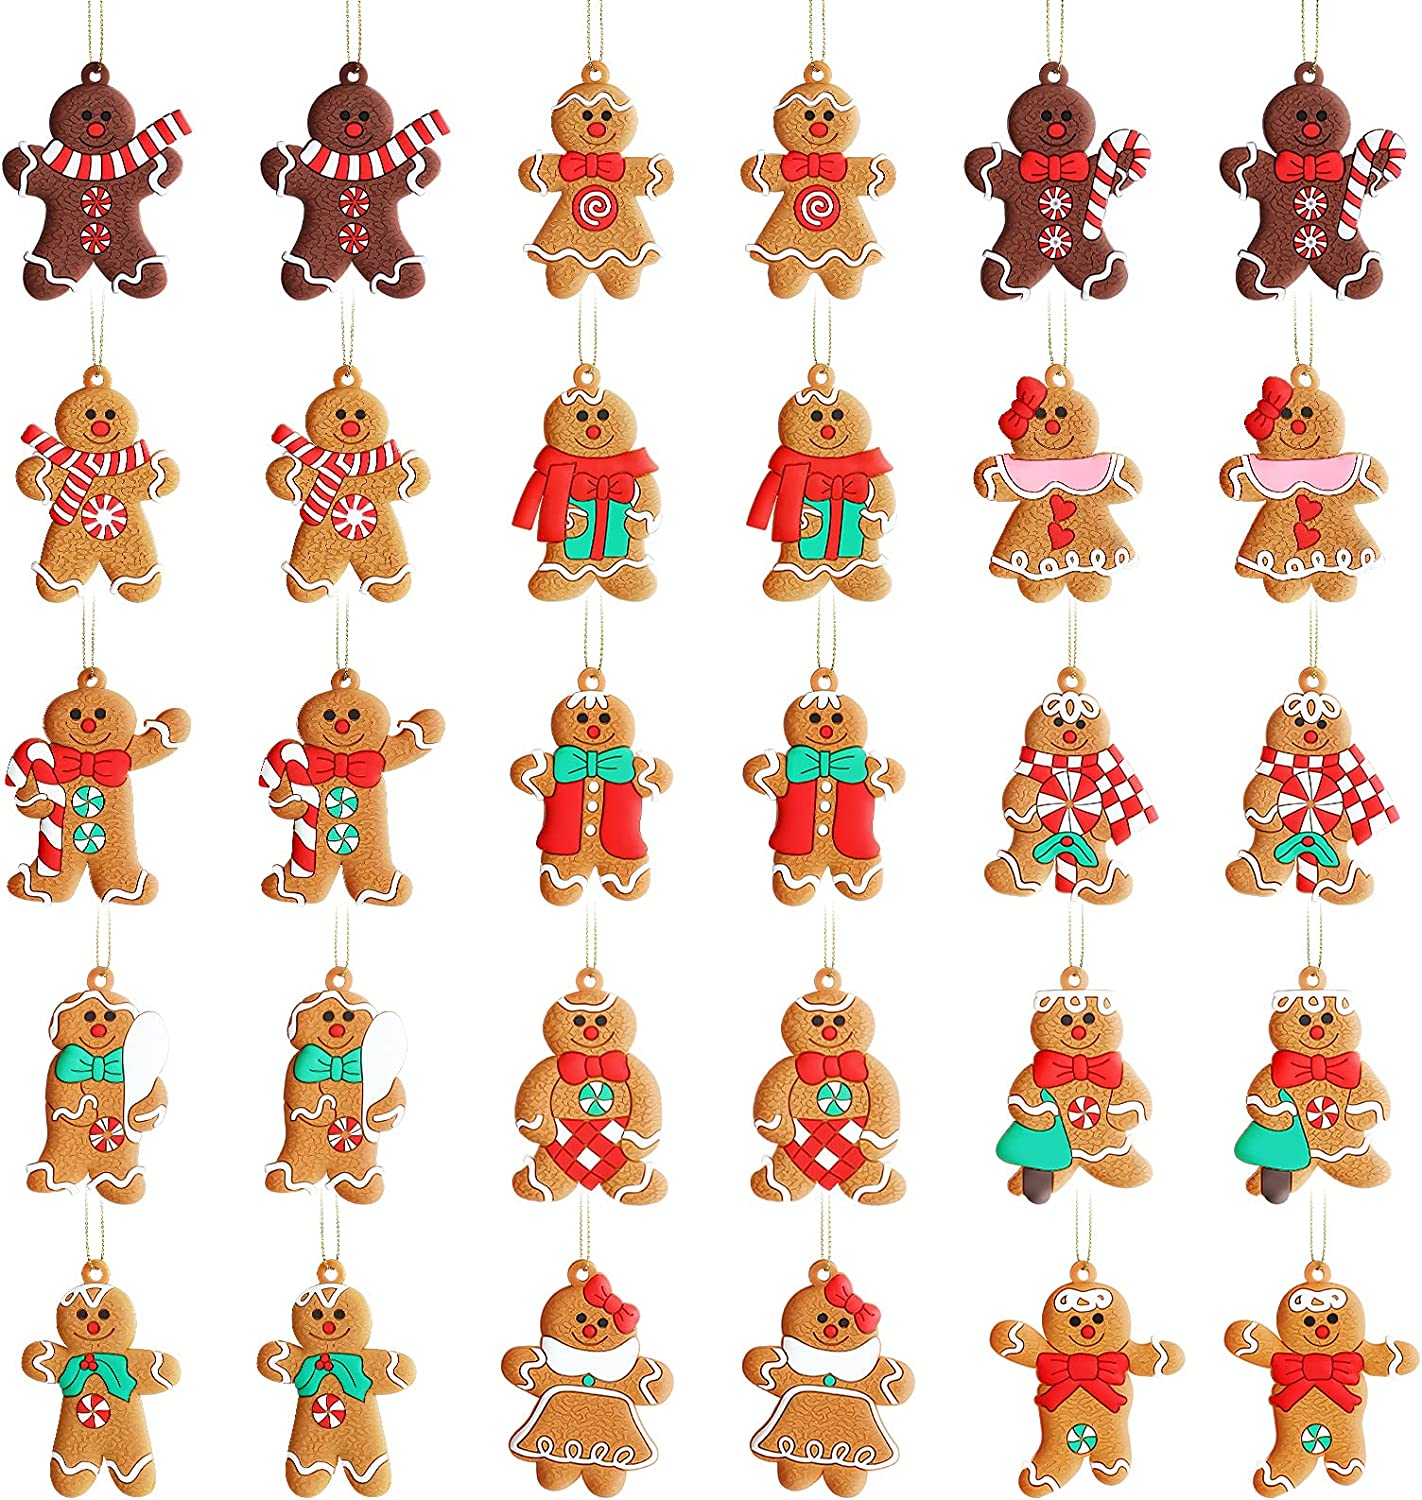 Christmas Gingerbread Man Gingerbread Ornament Plastic Gingerbread Hanging Decor Gingerbread Figurines Christmas Tree Ornament for Garden Office Coffee Bar Christmas Tree Decor, 15 Styles (30)